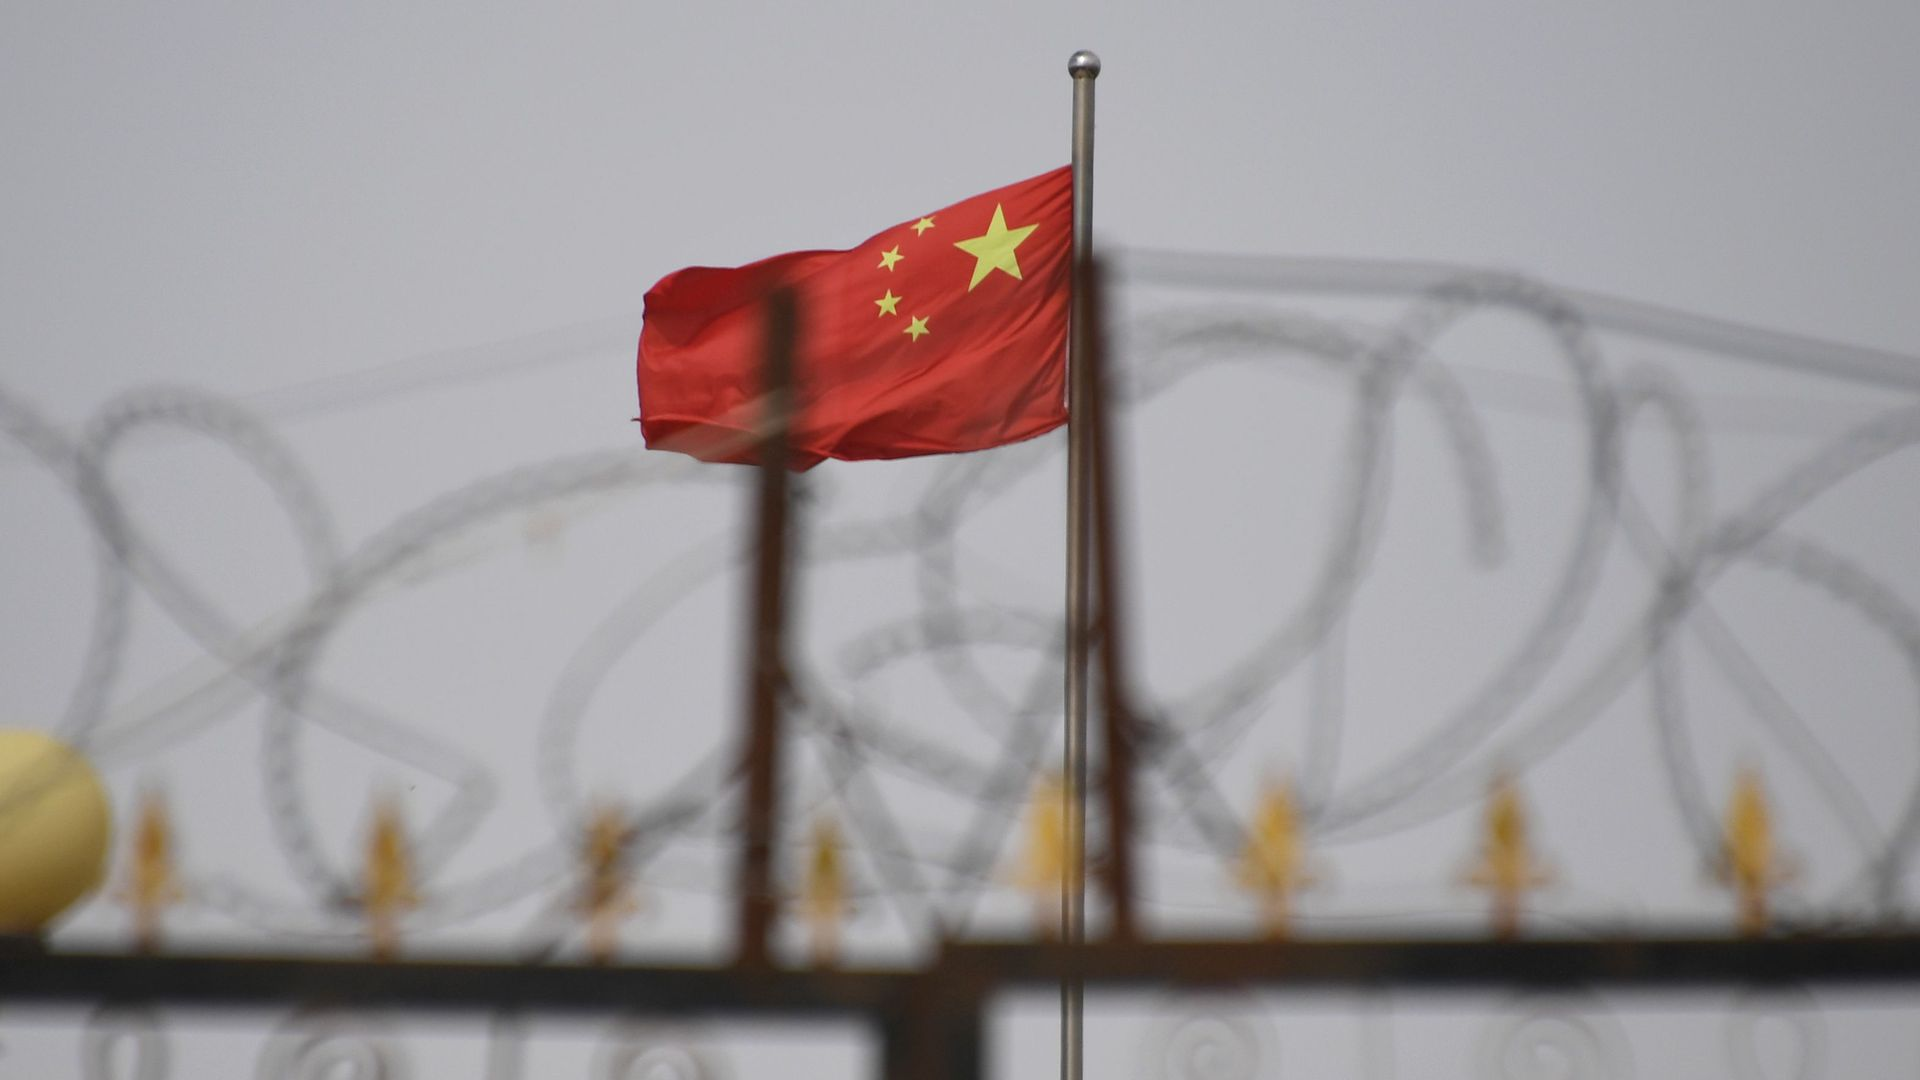 Chinese flag over barbed wire fence